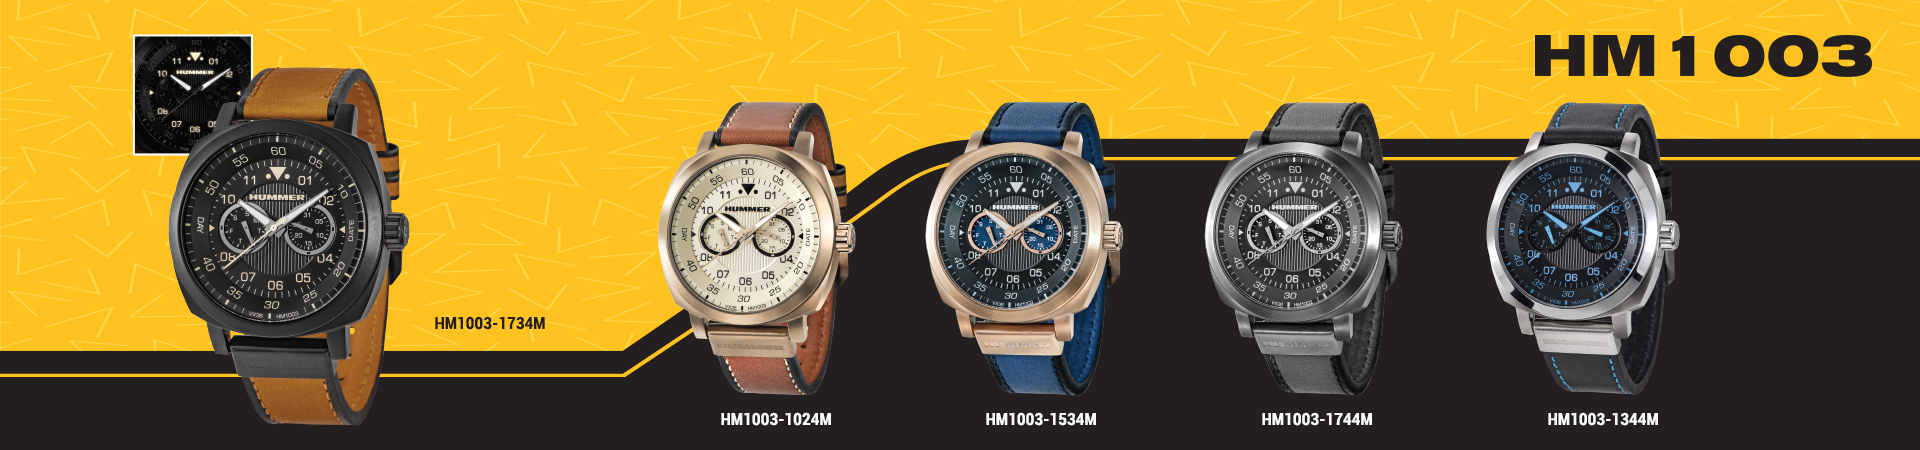 Hummer Watch Collection HM1003